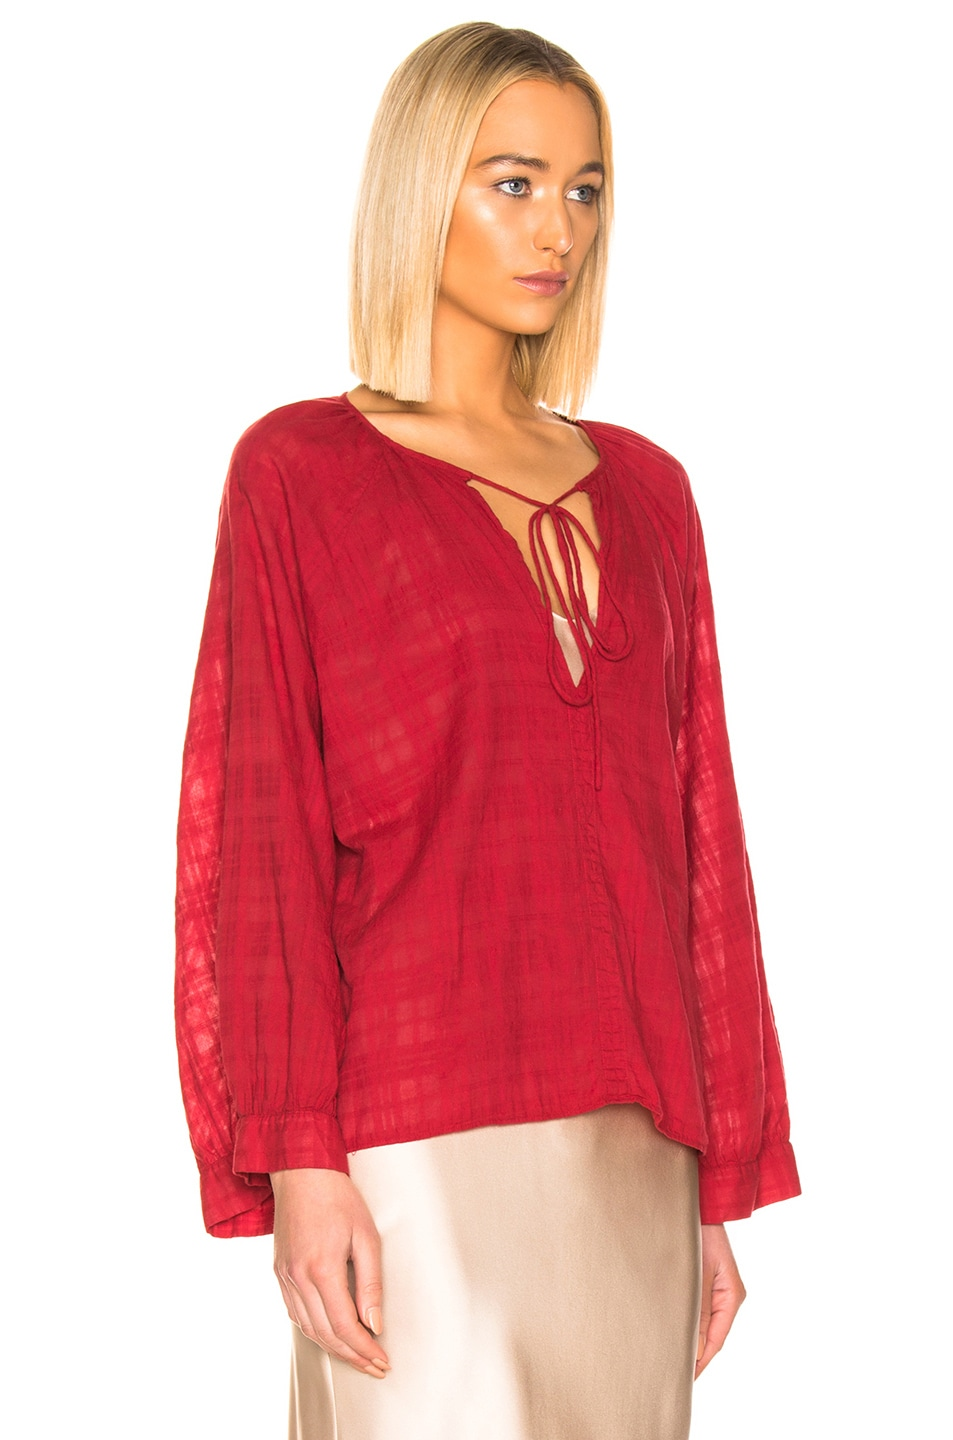 Image 2 of NILI LOTAN Aliva Top in Sheer Red Plaid